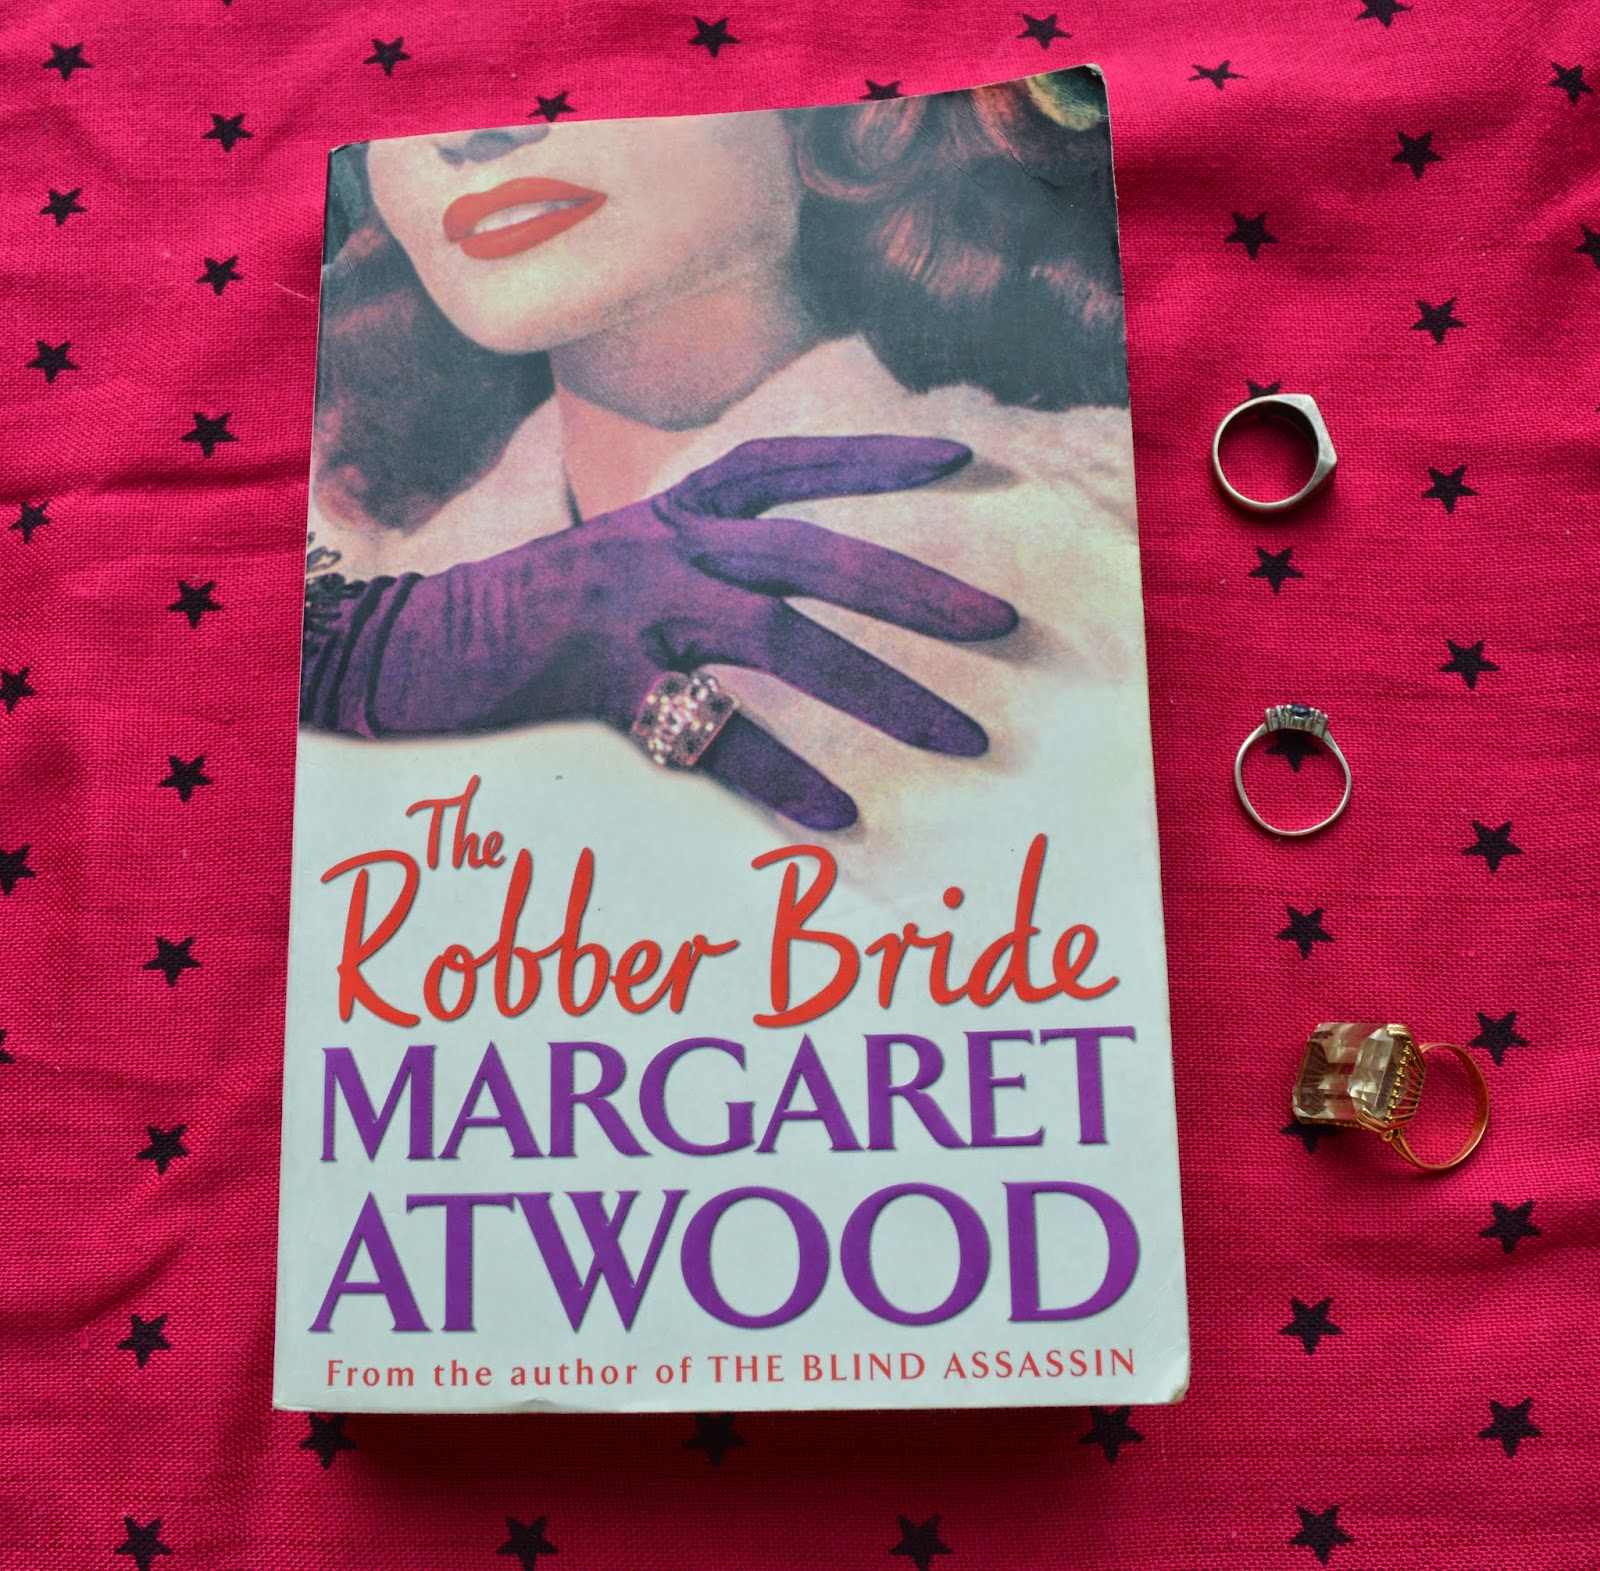 The Robber Bride, Margaret Atwood, paperback, spine, UK edition, review, Canadian, literature, feminism, second wave, book review,